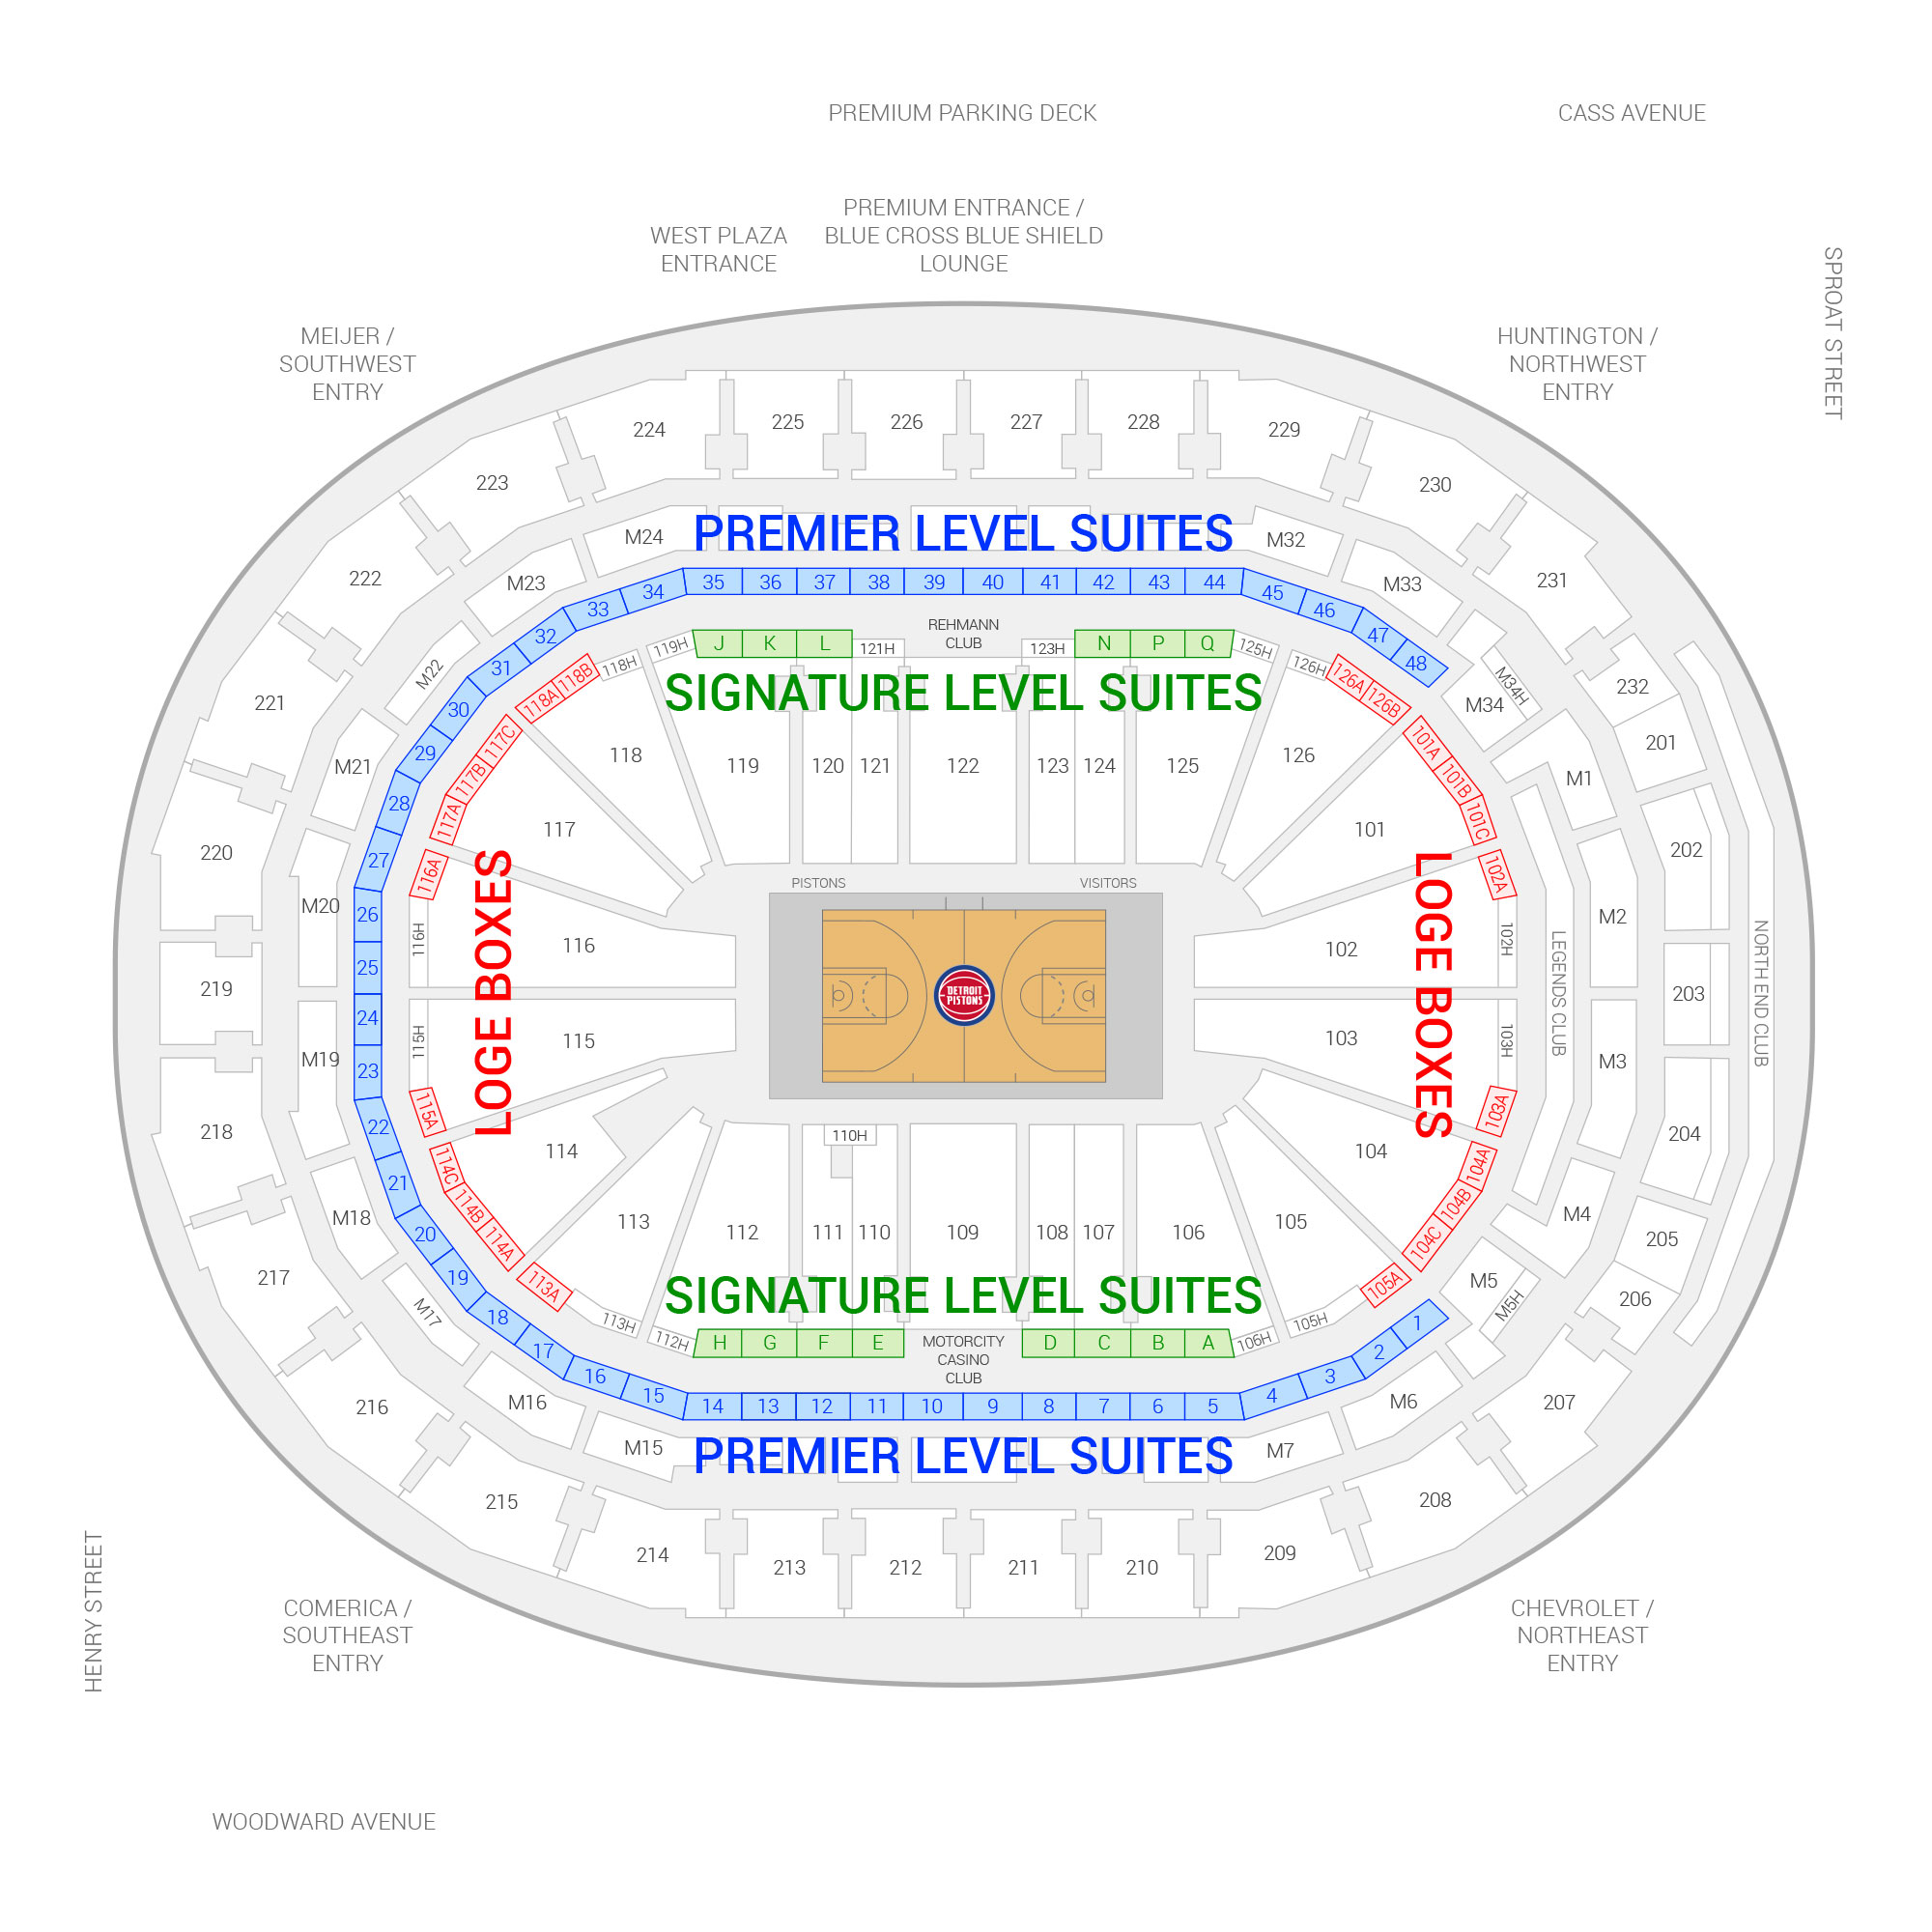 Little Caesars Arena / Detroit Pistons Suite Map and Seating Chart